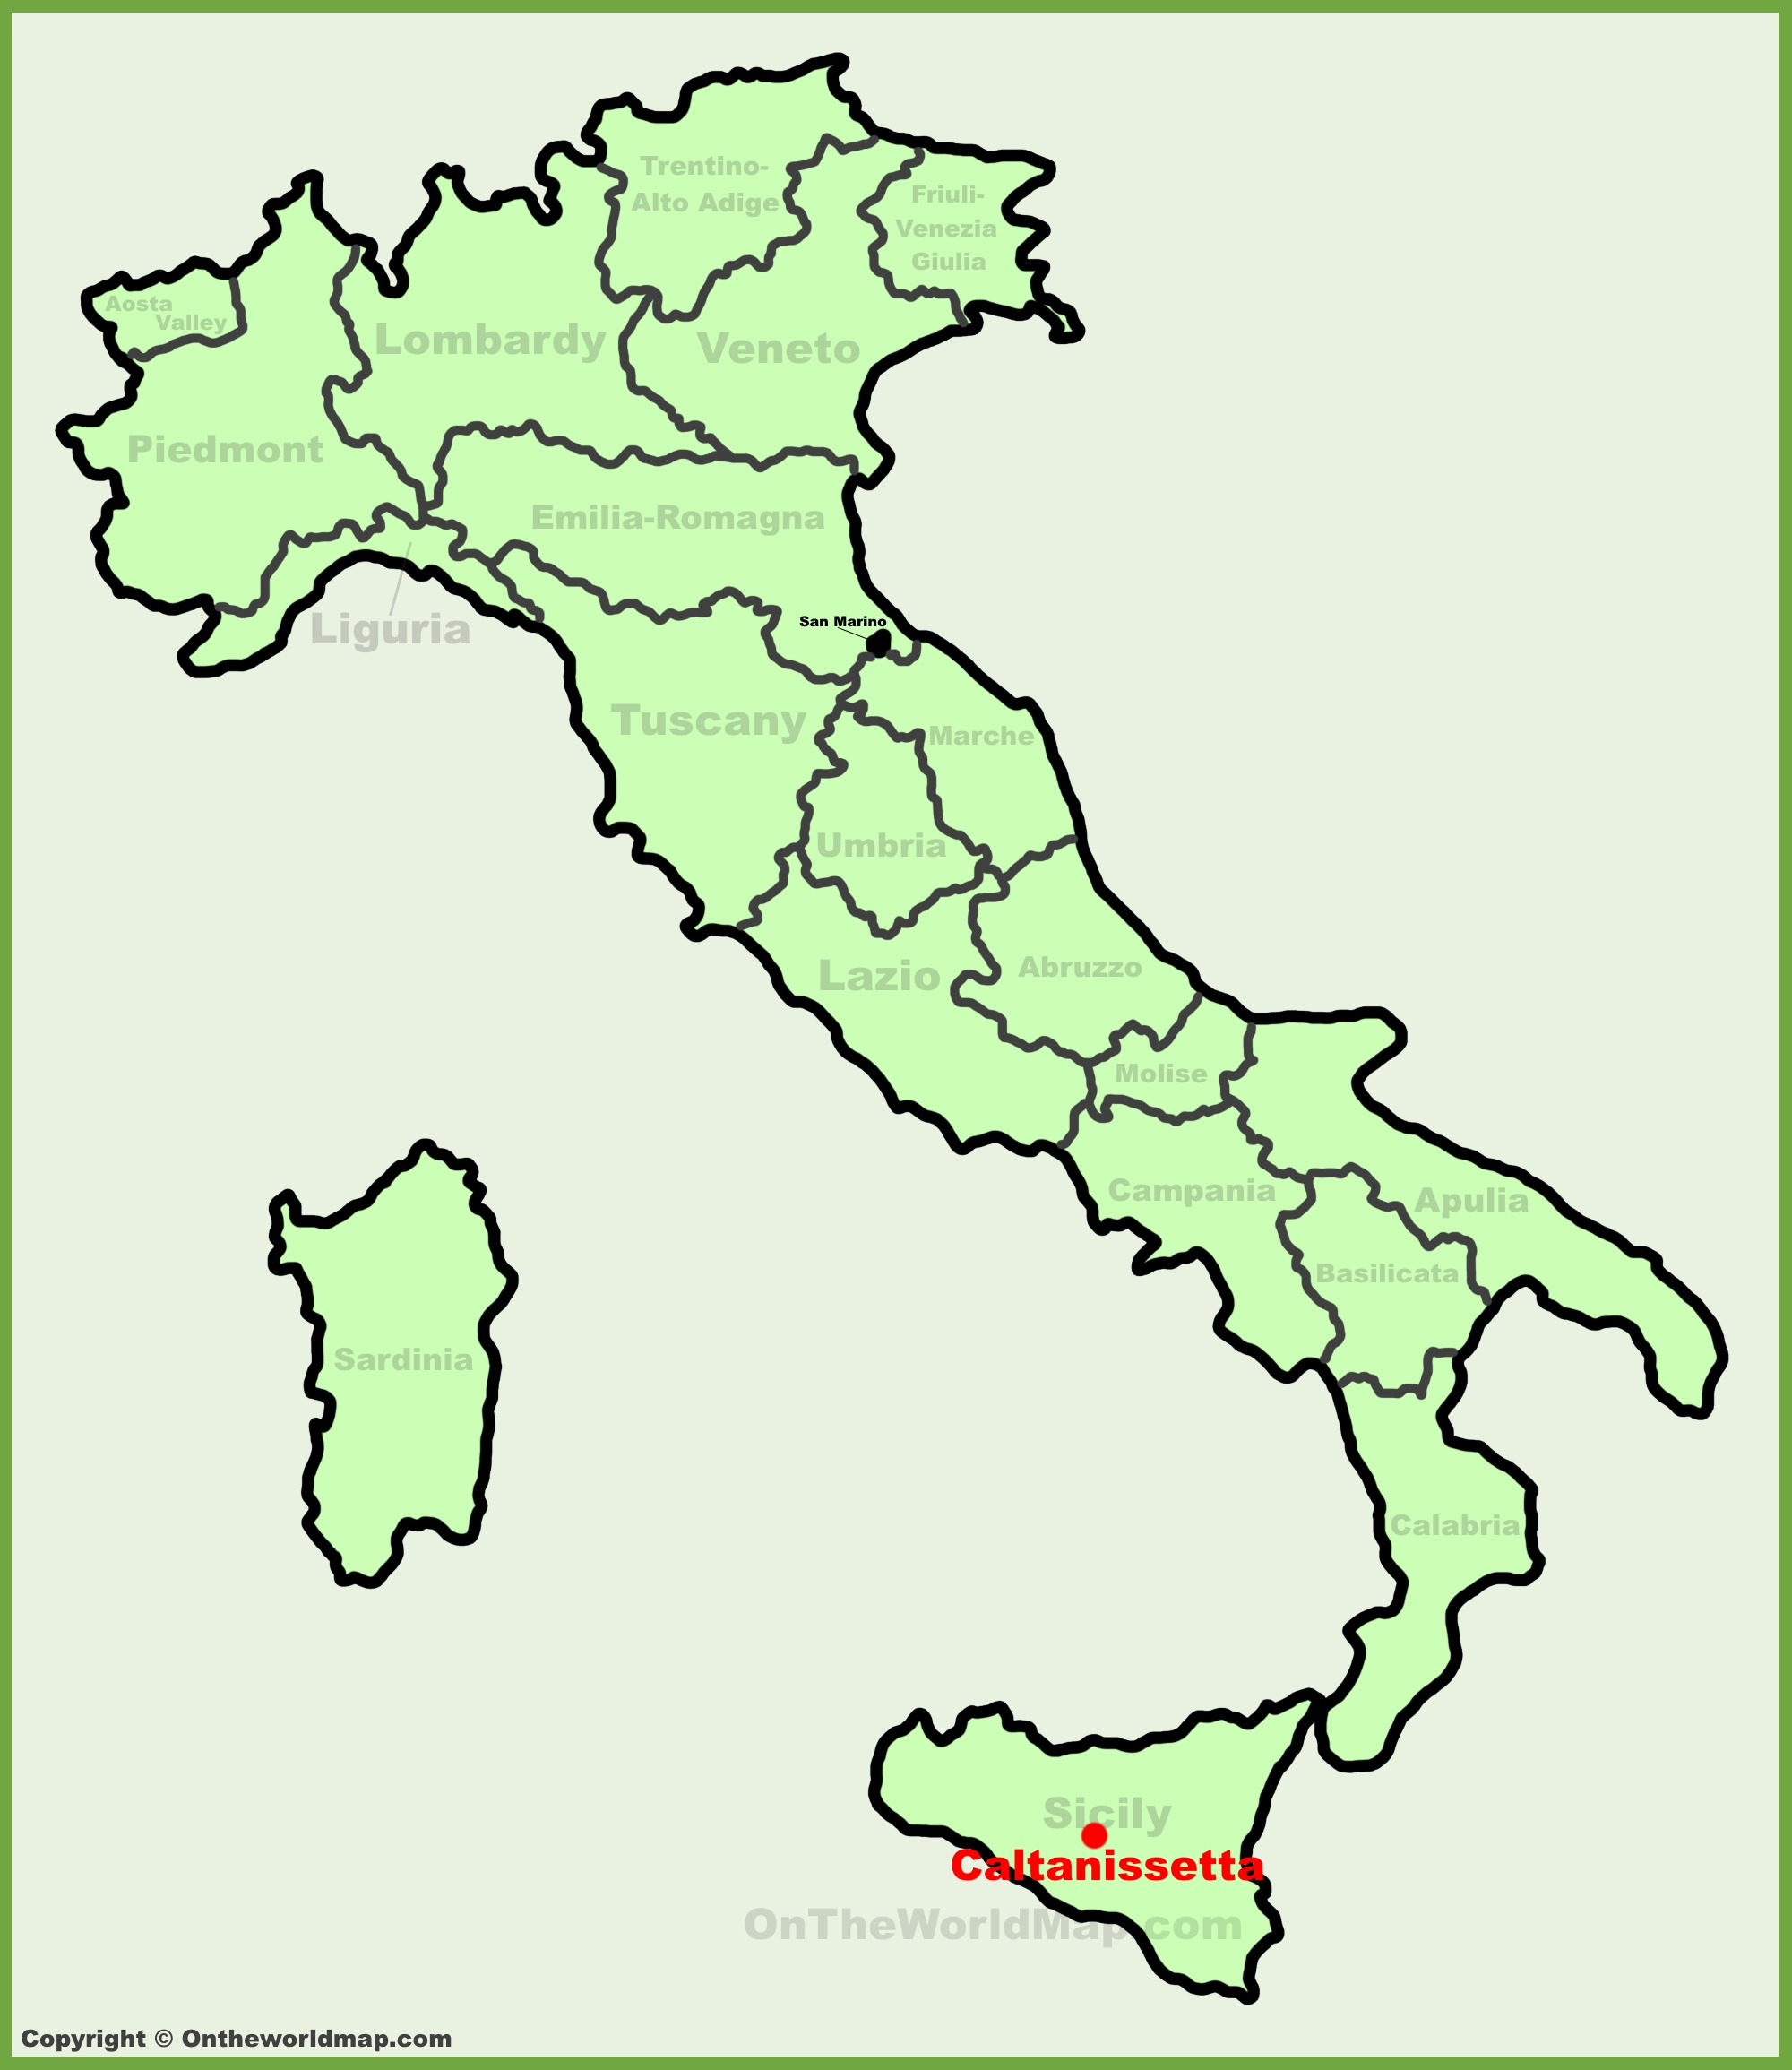 Caltanissetta location on the Italy map